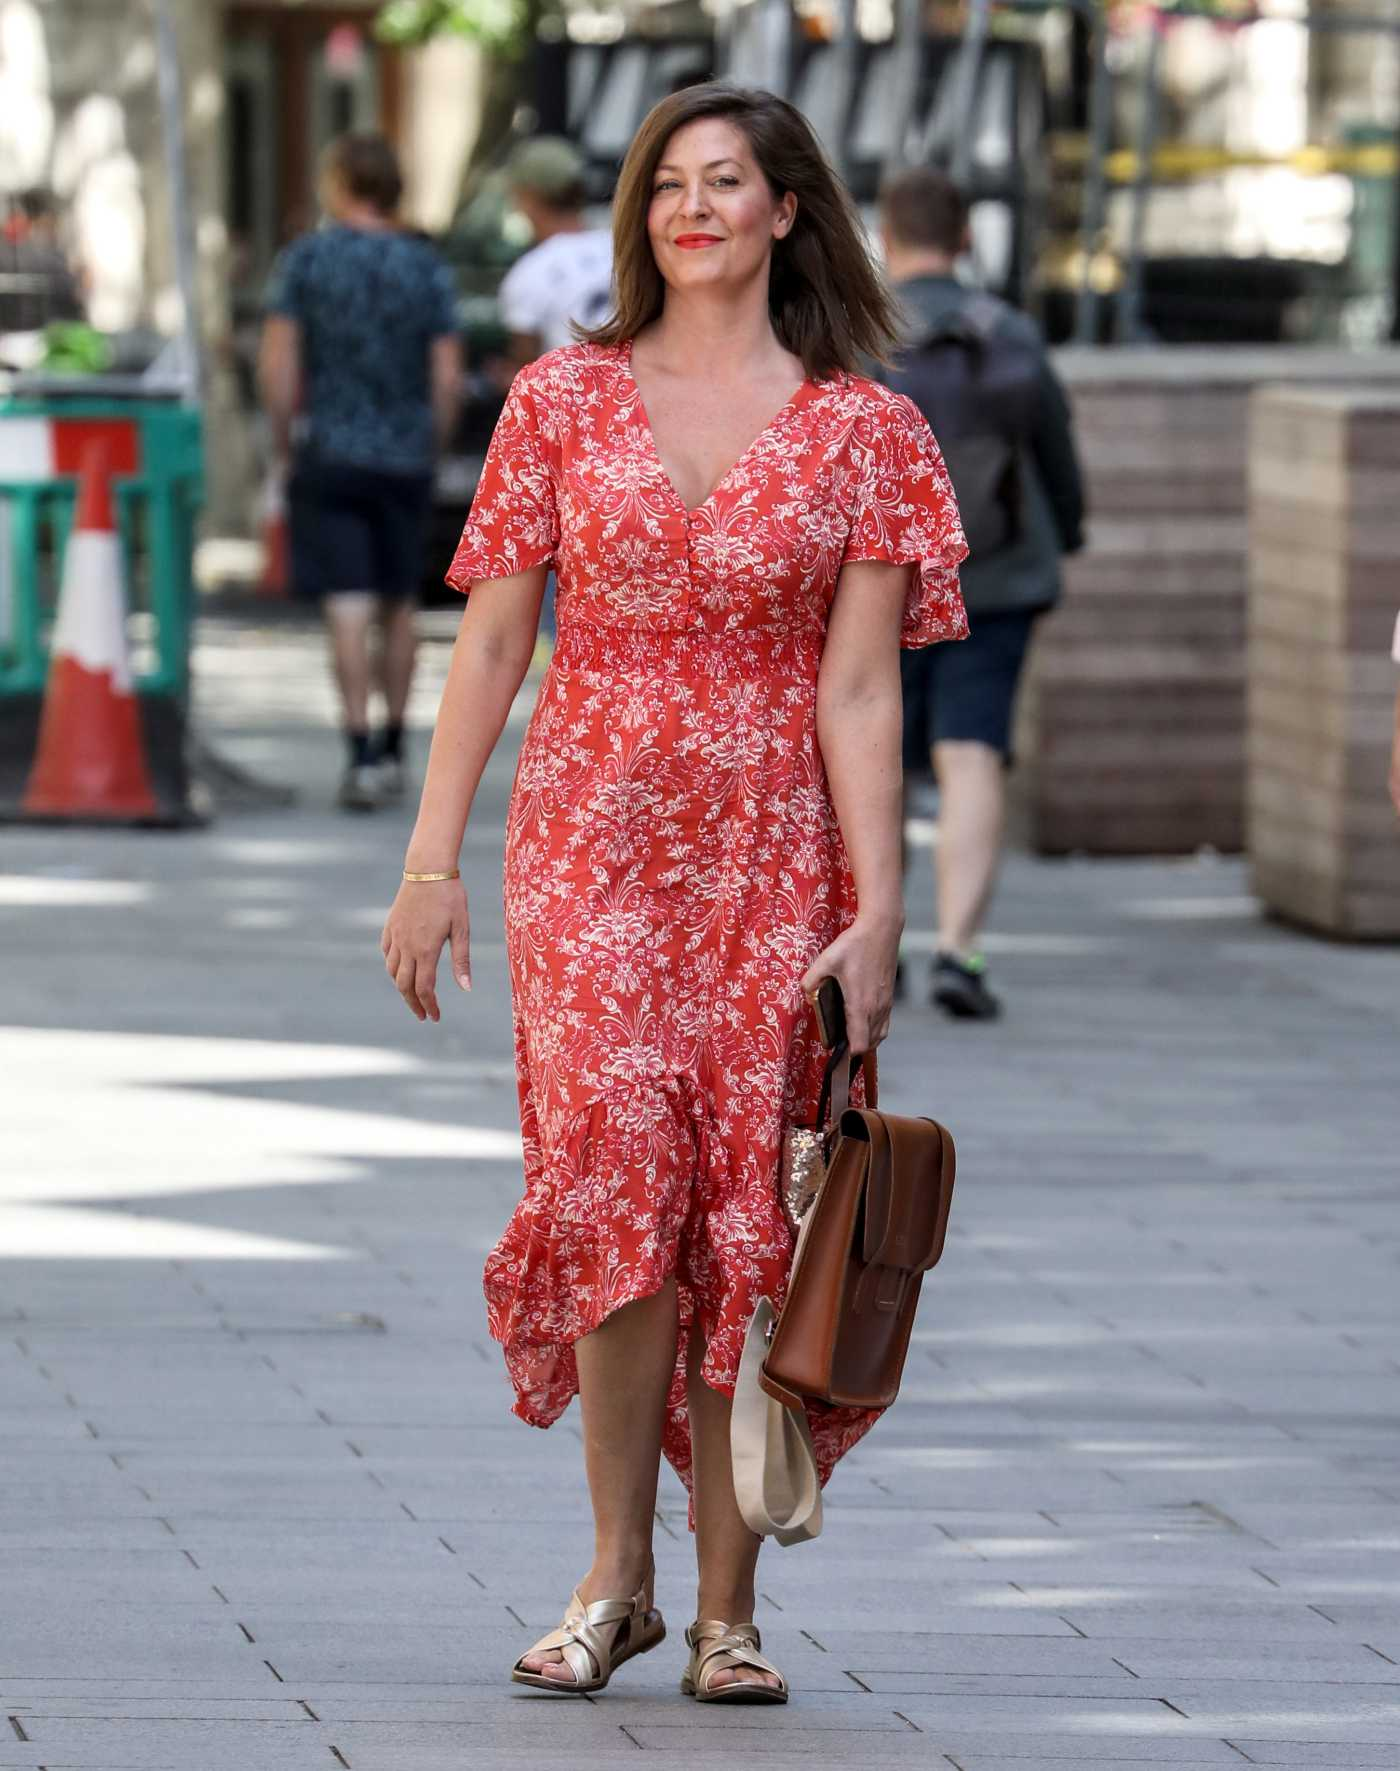 Lucy Horobin in a Red Floral Dress Arrives at the Global Radio Studios in London 06/22/2020